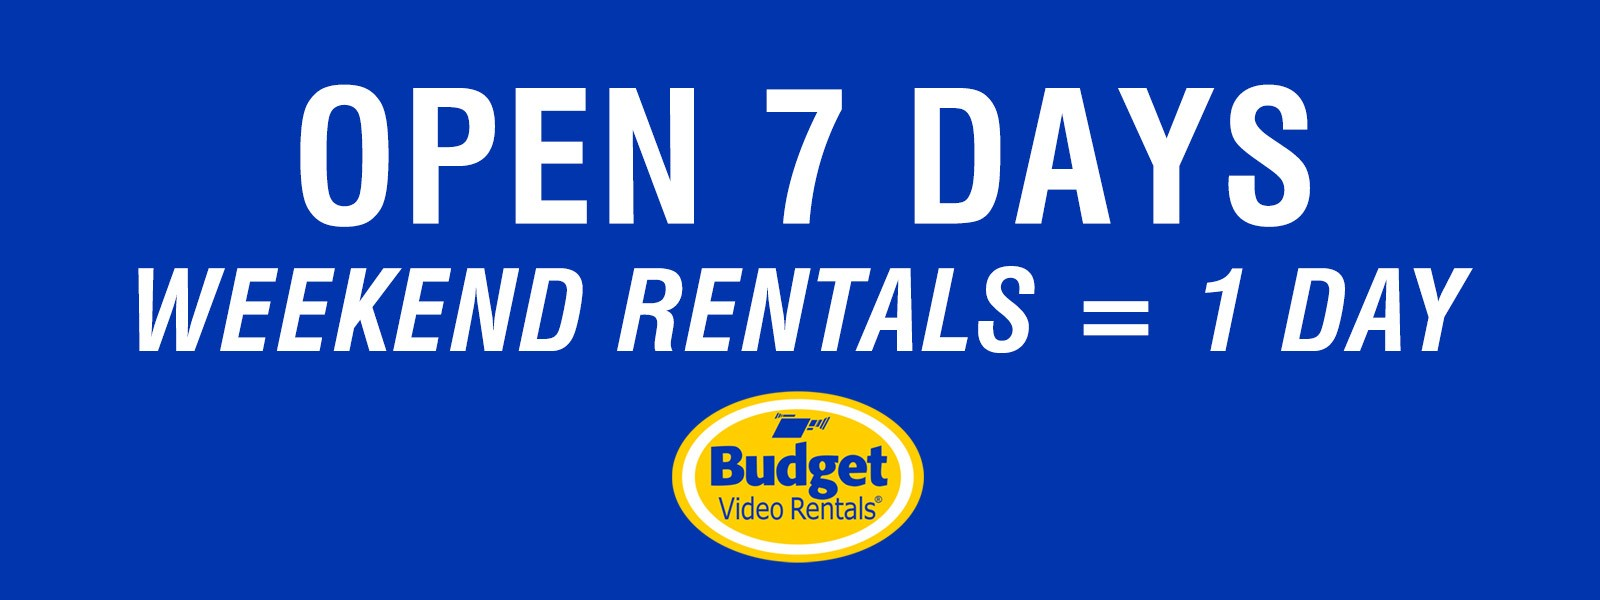 Budget Video Rentals - Open 7 Days